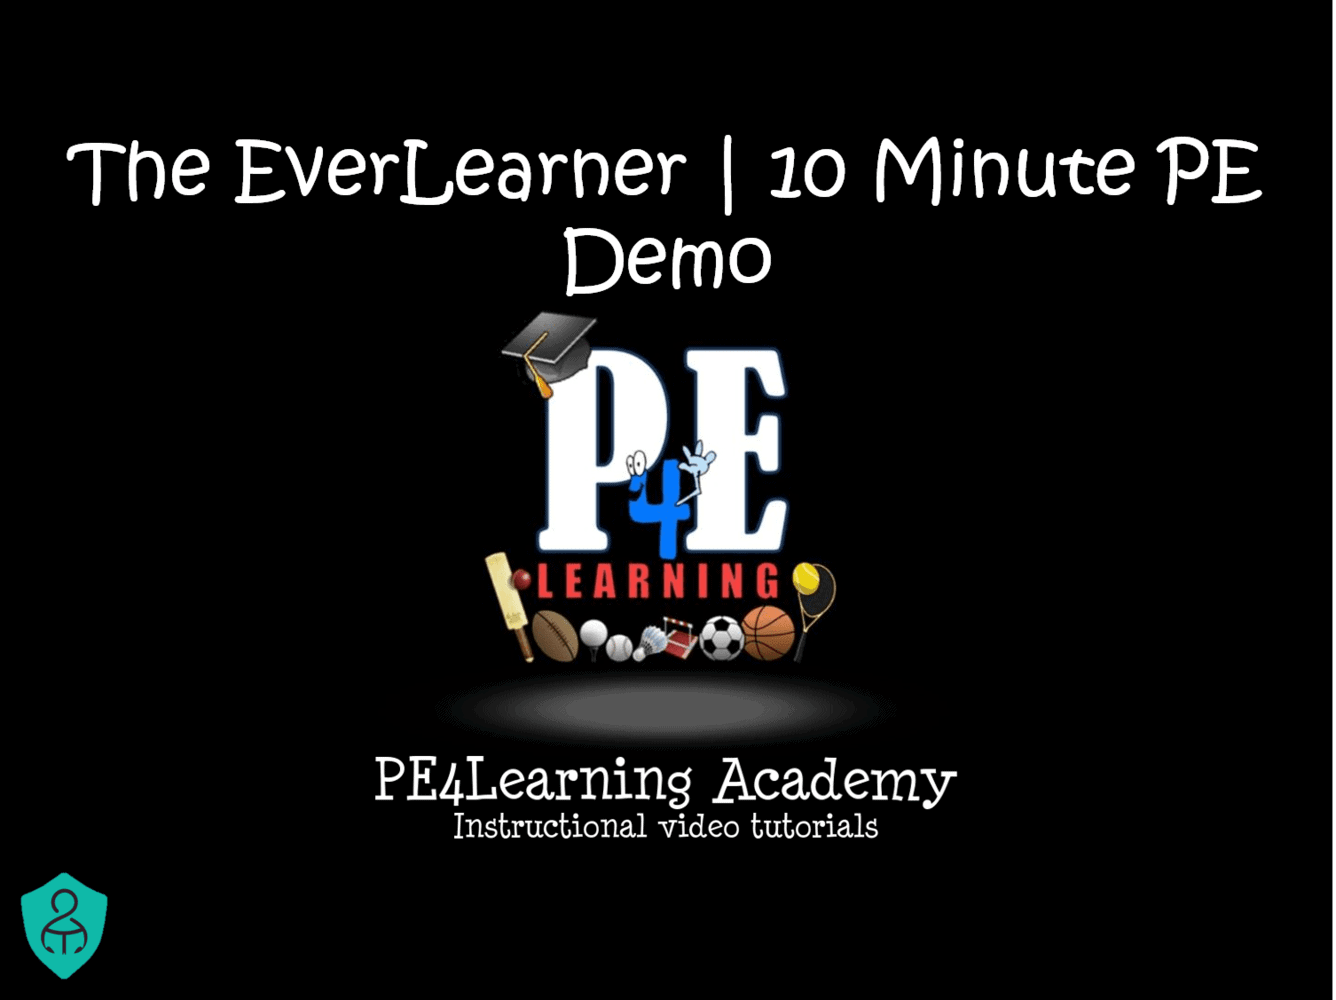 The EverLearner | 10 Minute PE Demonstration